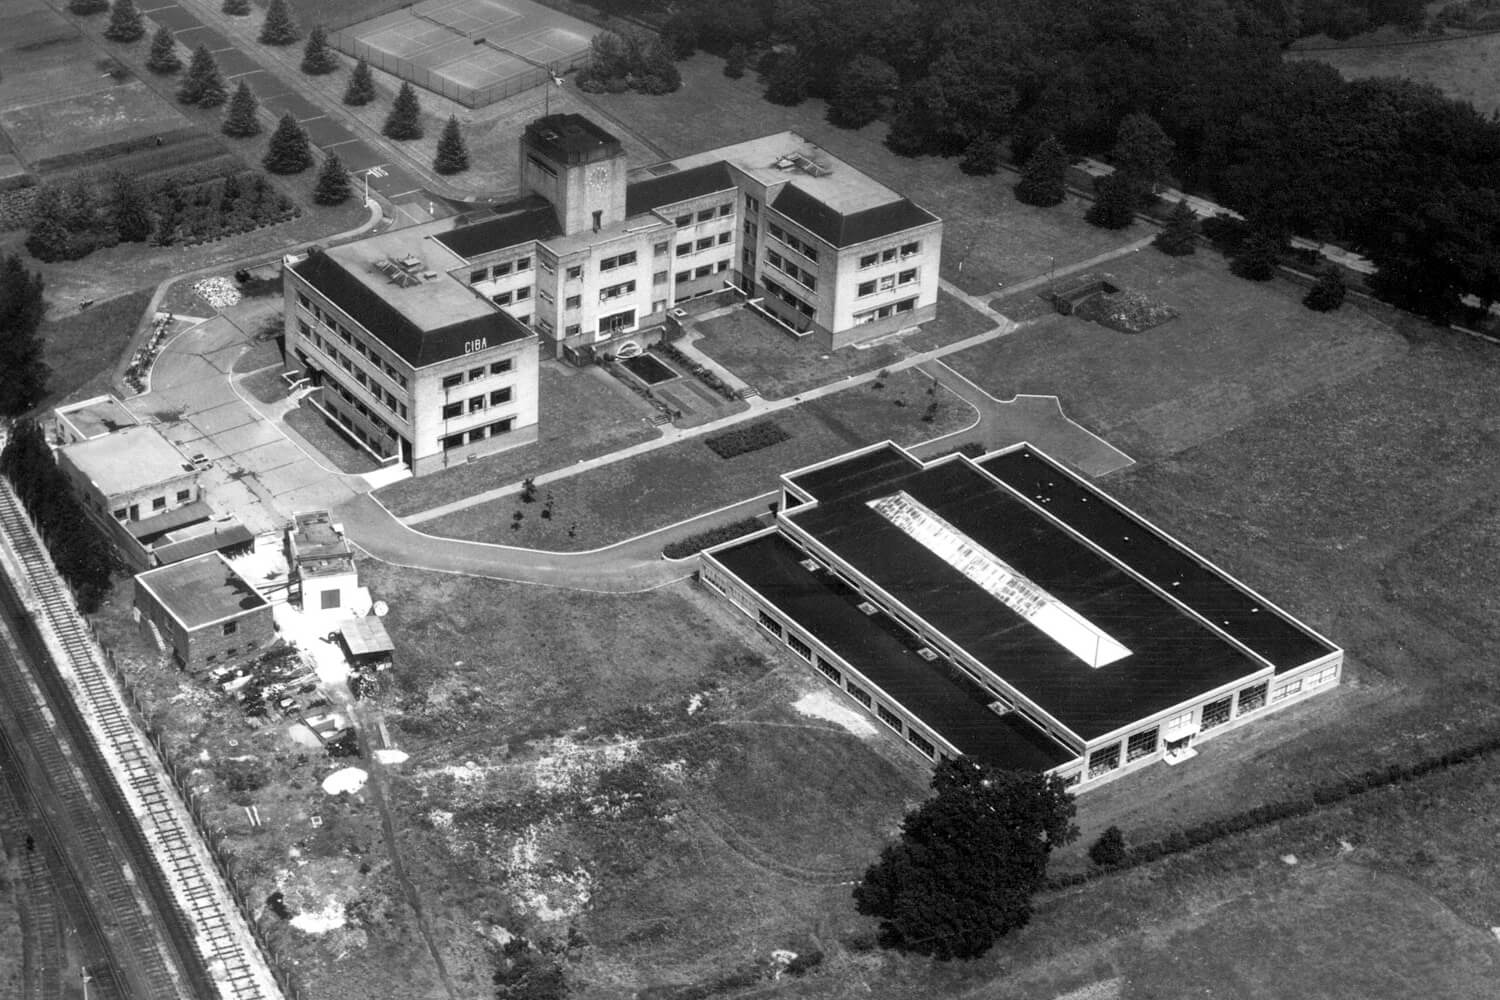 Aerial image of the site looking north taken in 1954